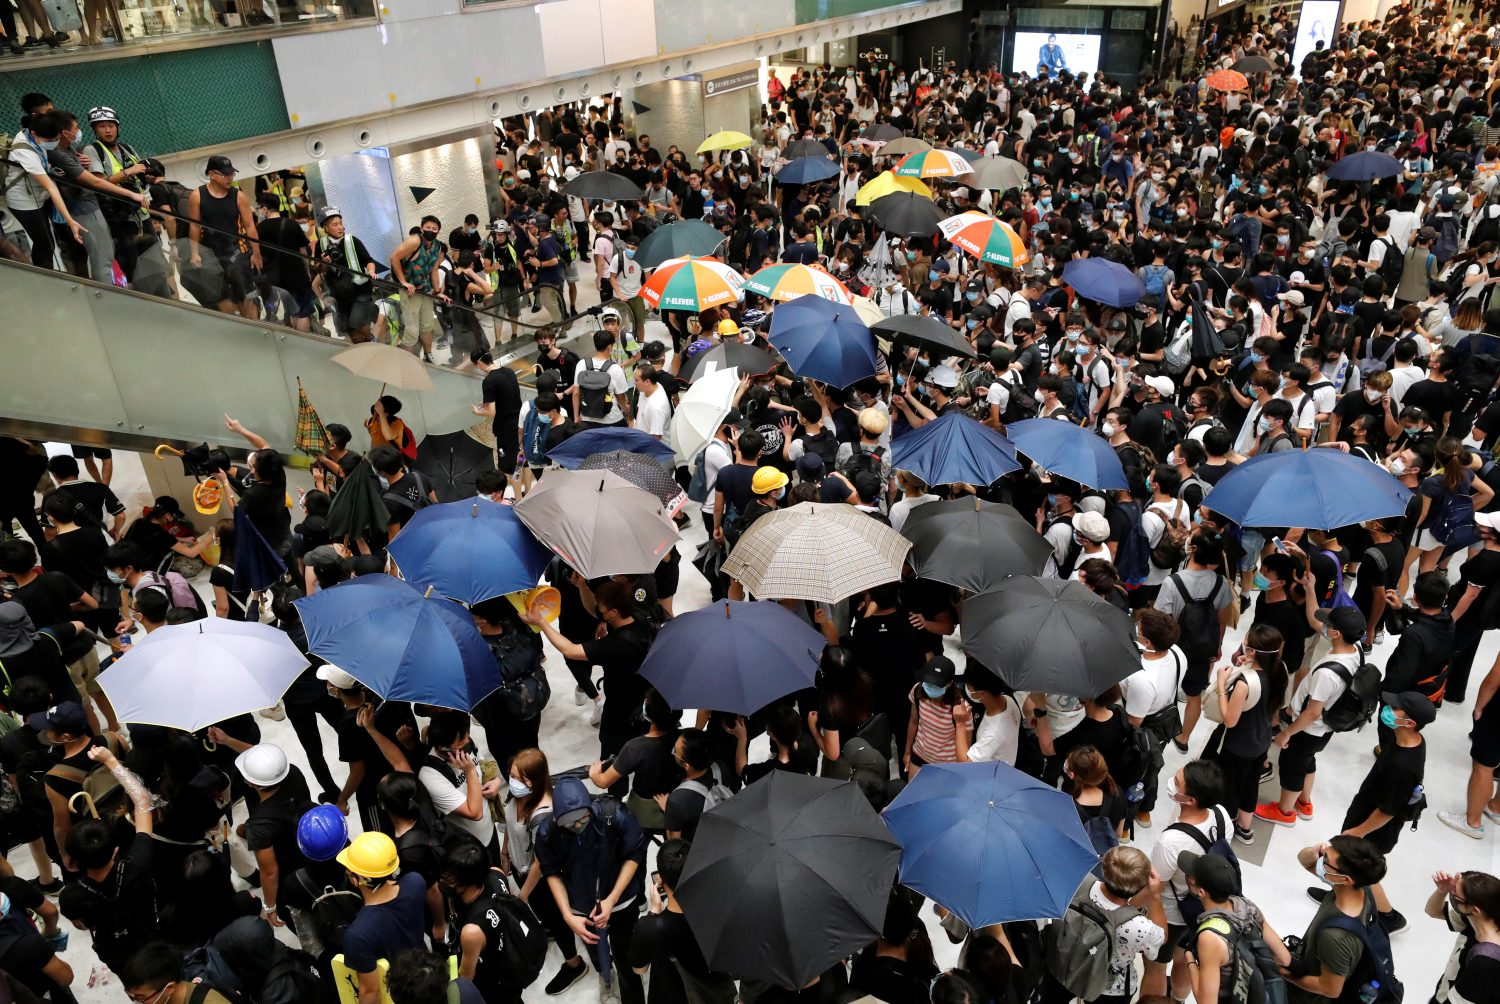 FILE PHOTO: Pro-democracy protesters hold umbrellas inside a mall as they face the riot police after a march at Sha Tin District of East New Territories, in Hong Kong, China July 14, 2019. REUTERS/Tyrone Siu/File Photo